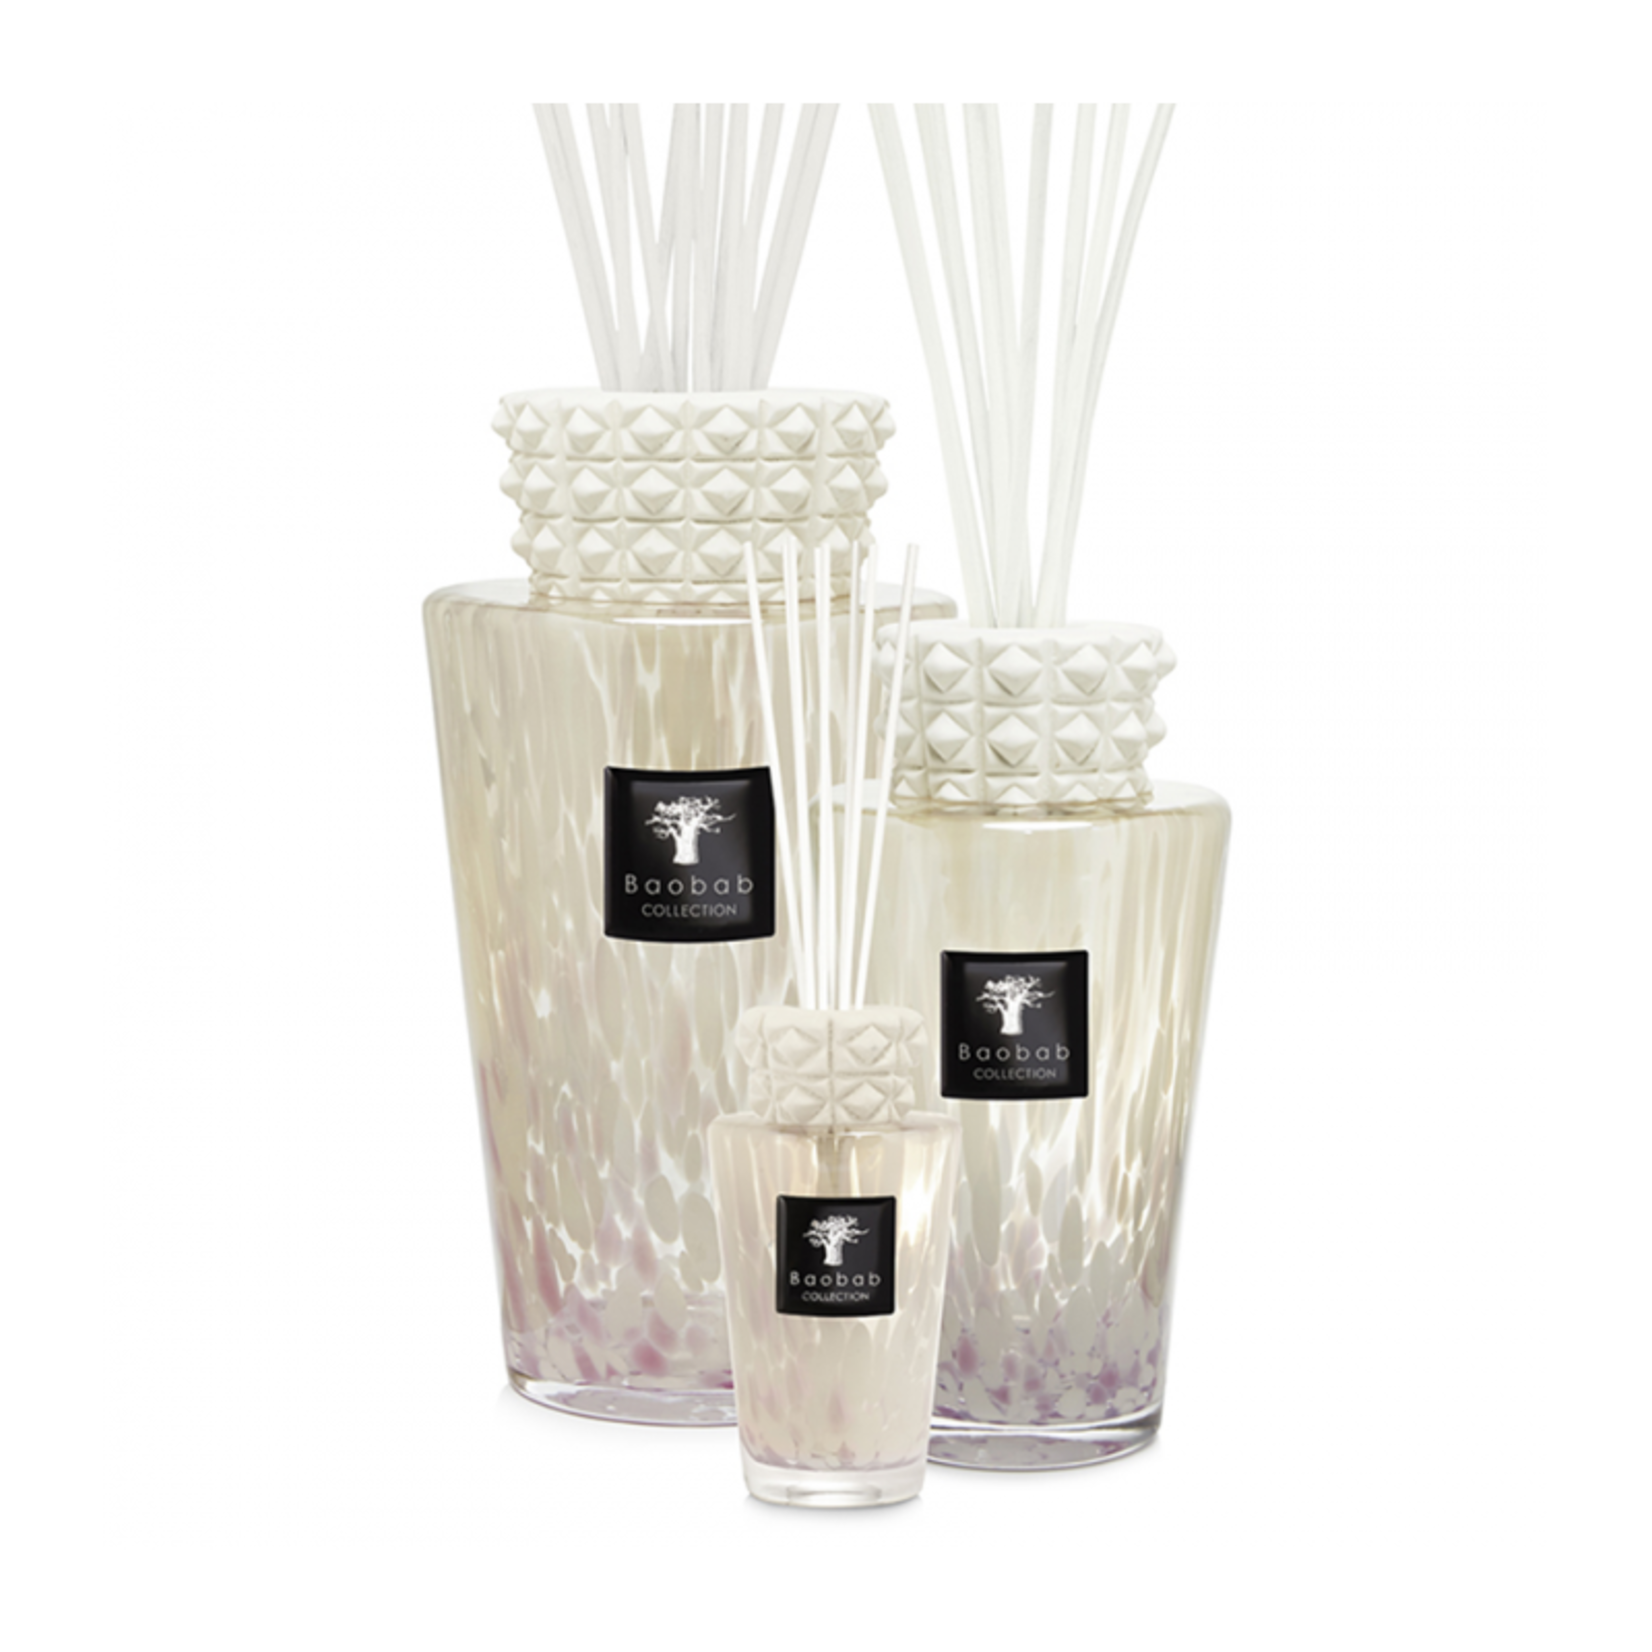 Baobab Collection Totem de perles blanches - 2L